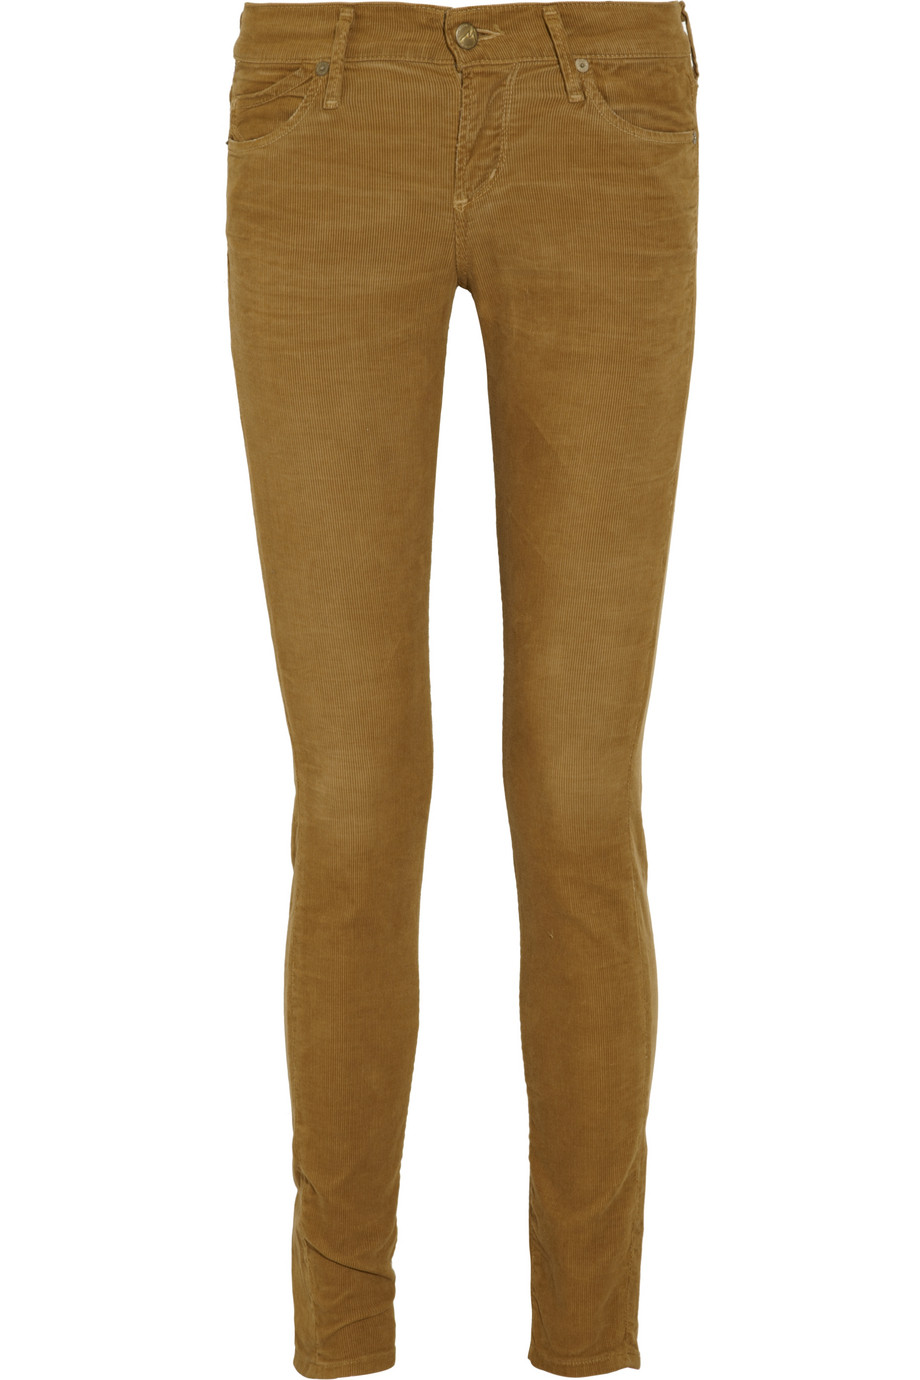 citizens-of-humanity-brown-avedon-low-rise-corduroy-skinny-jeans-product-1-2086649-400592744.jpeg